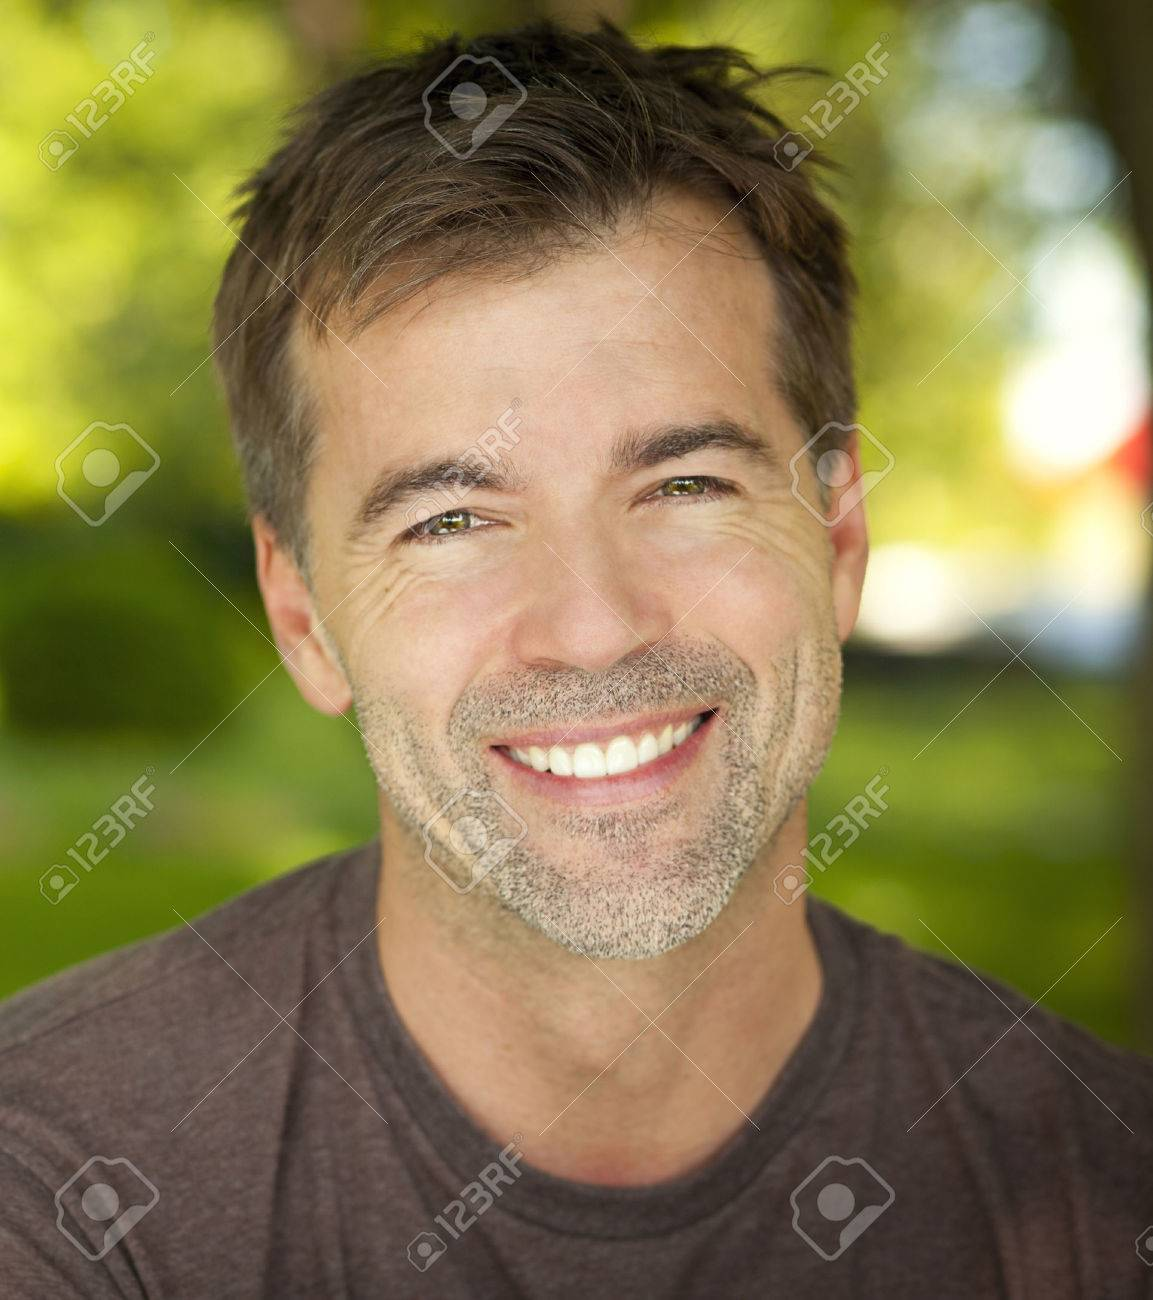 Portrait Of A Mature Confident Man Smiling At The Camera Stock Photo - 33305986